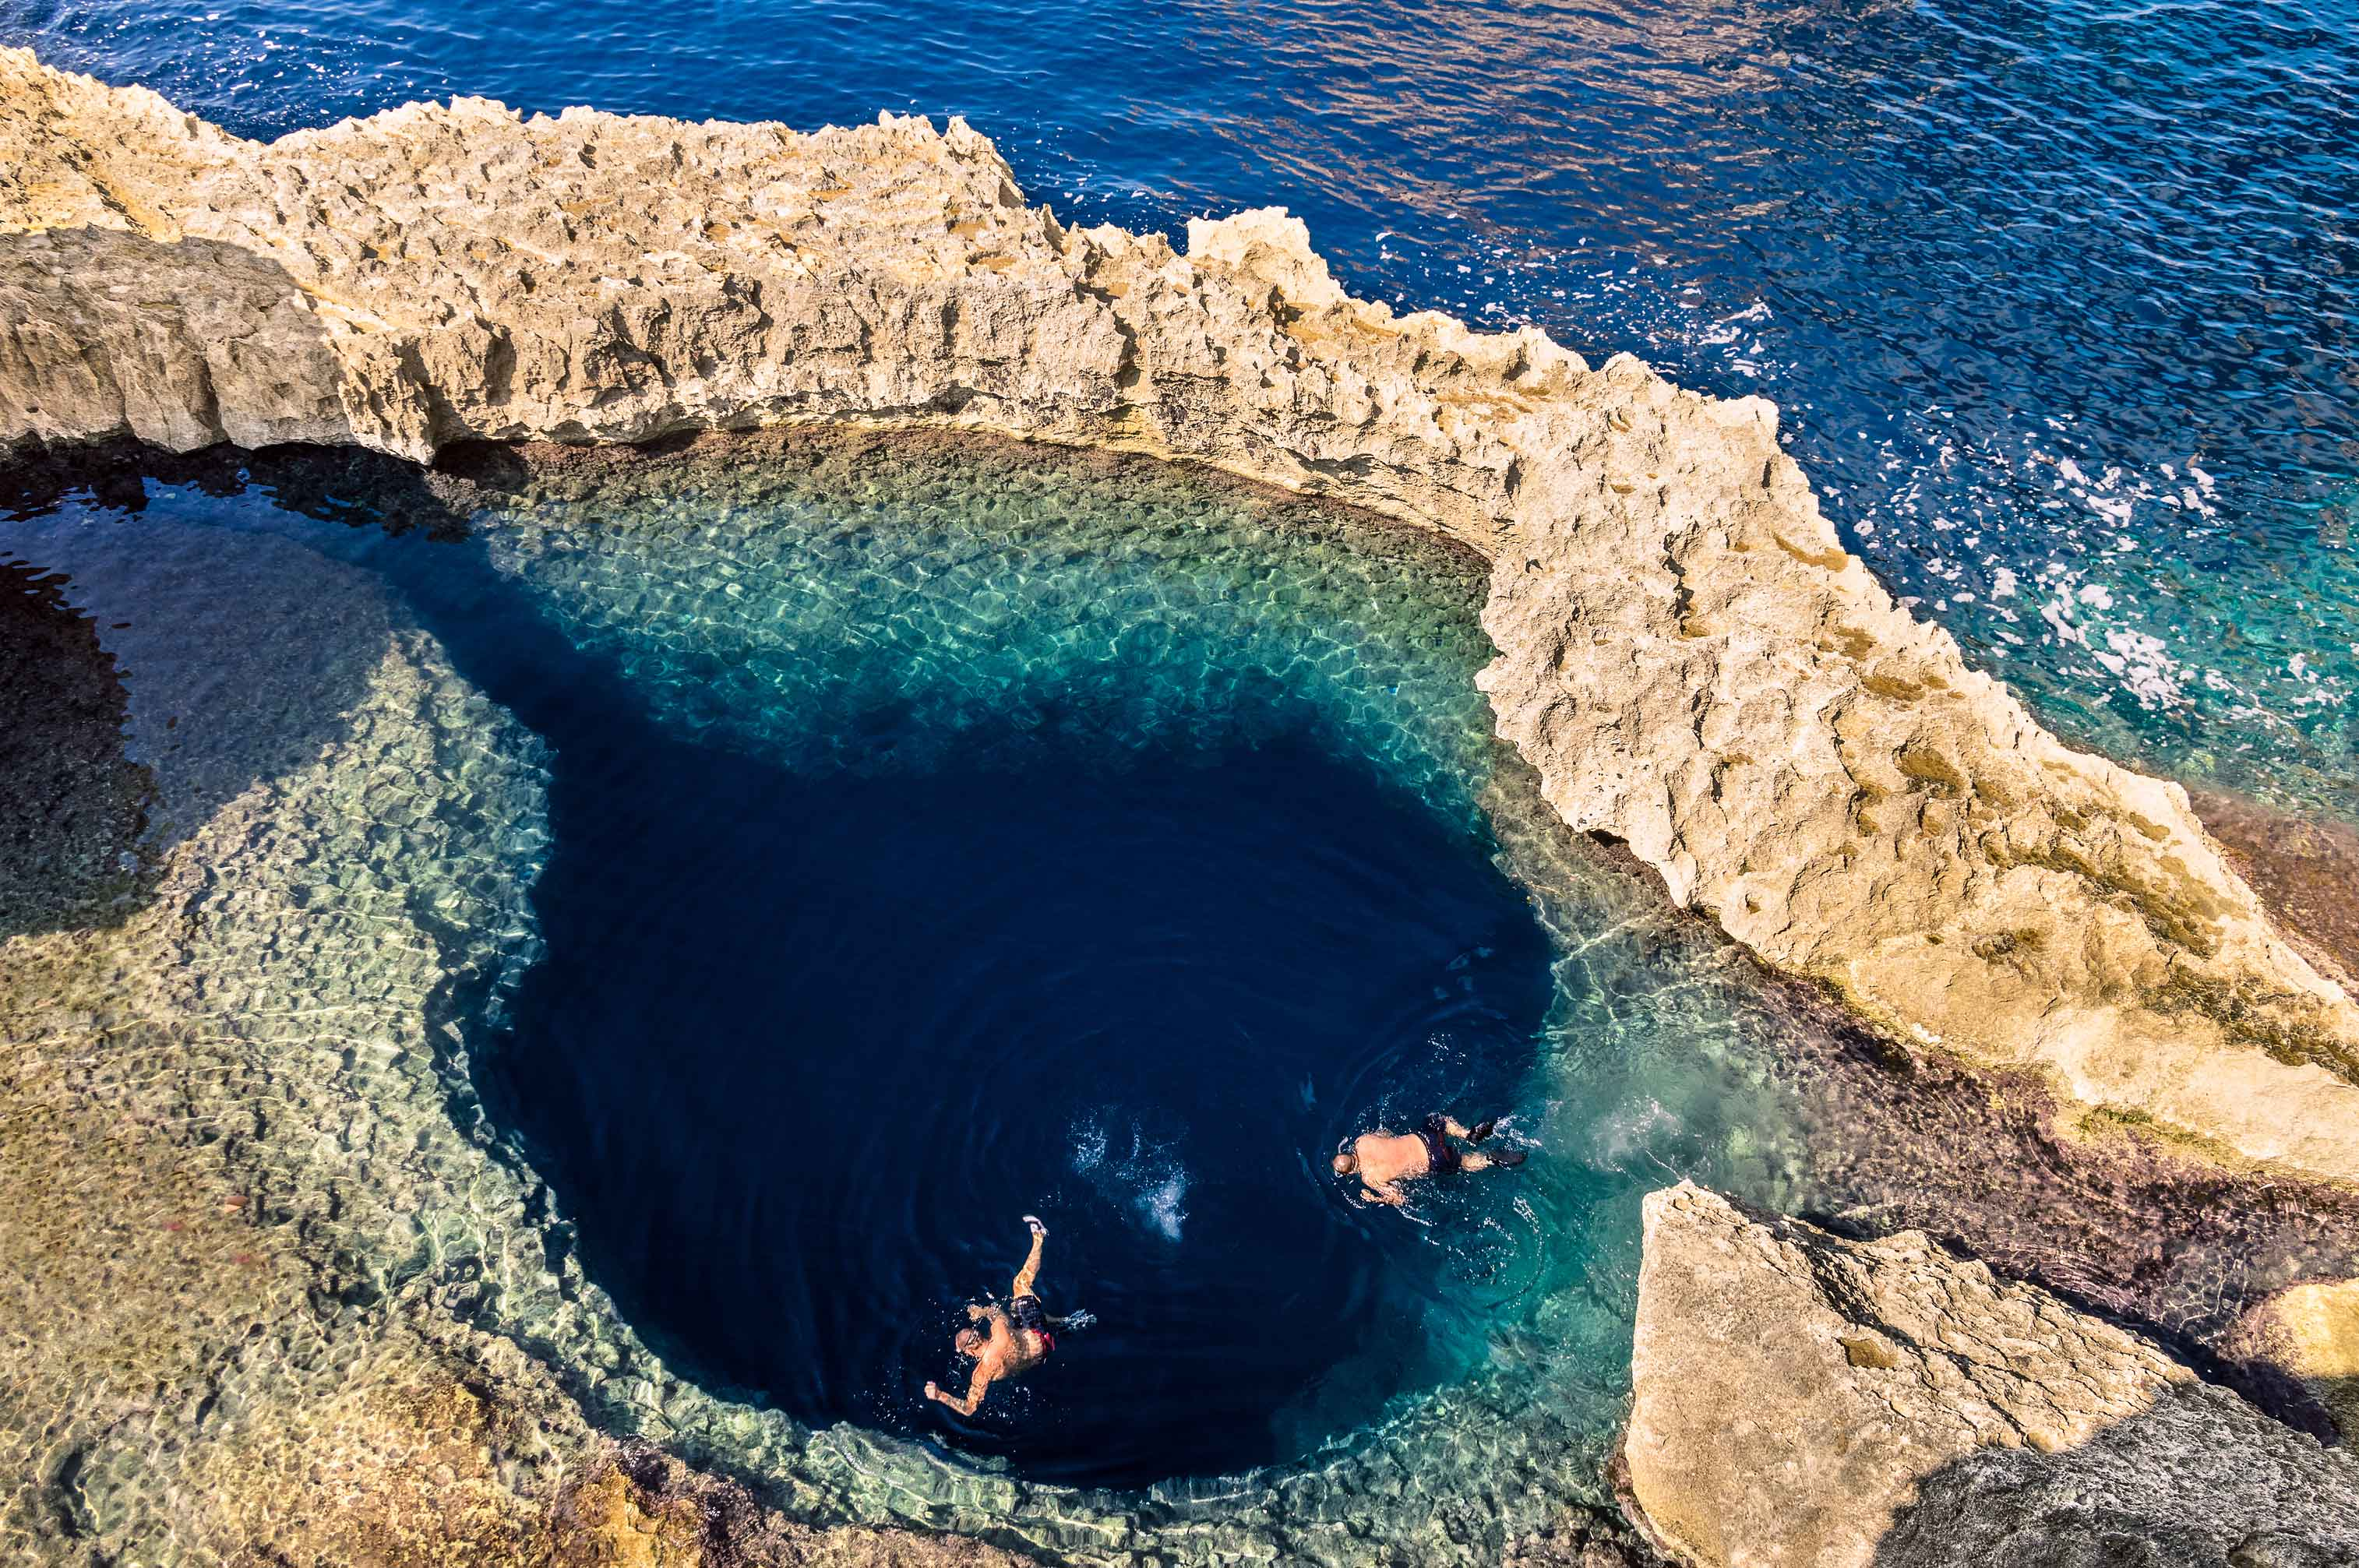 Canva---Deep-Blue-Hole-at-the-World-Famous-Azure-Window-in-Gozo-Island